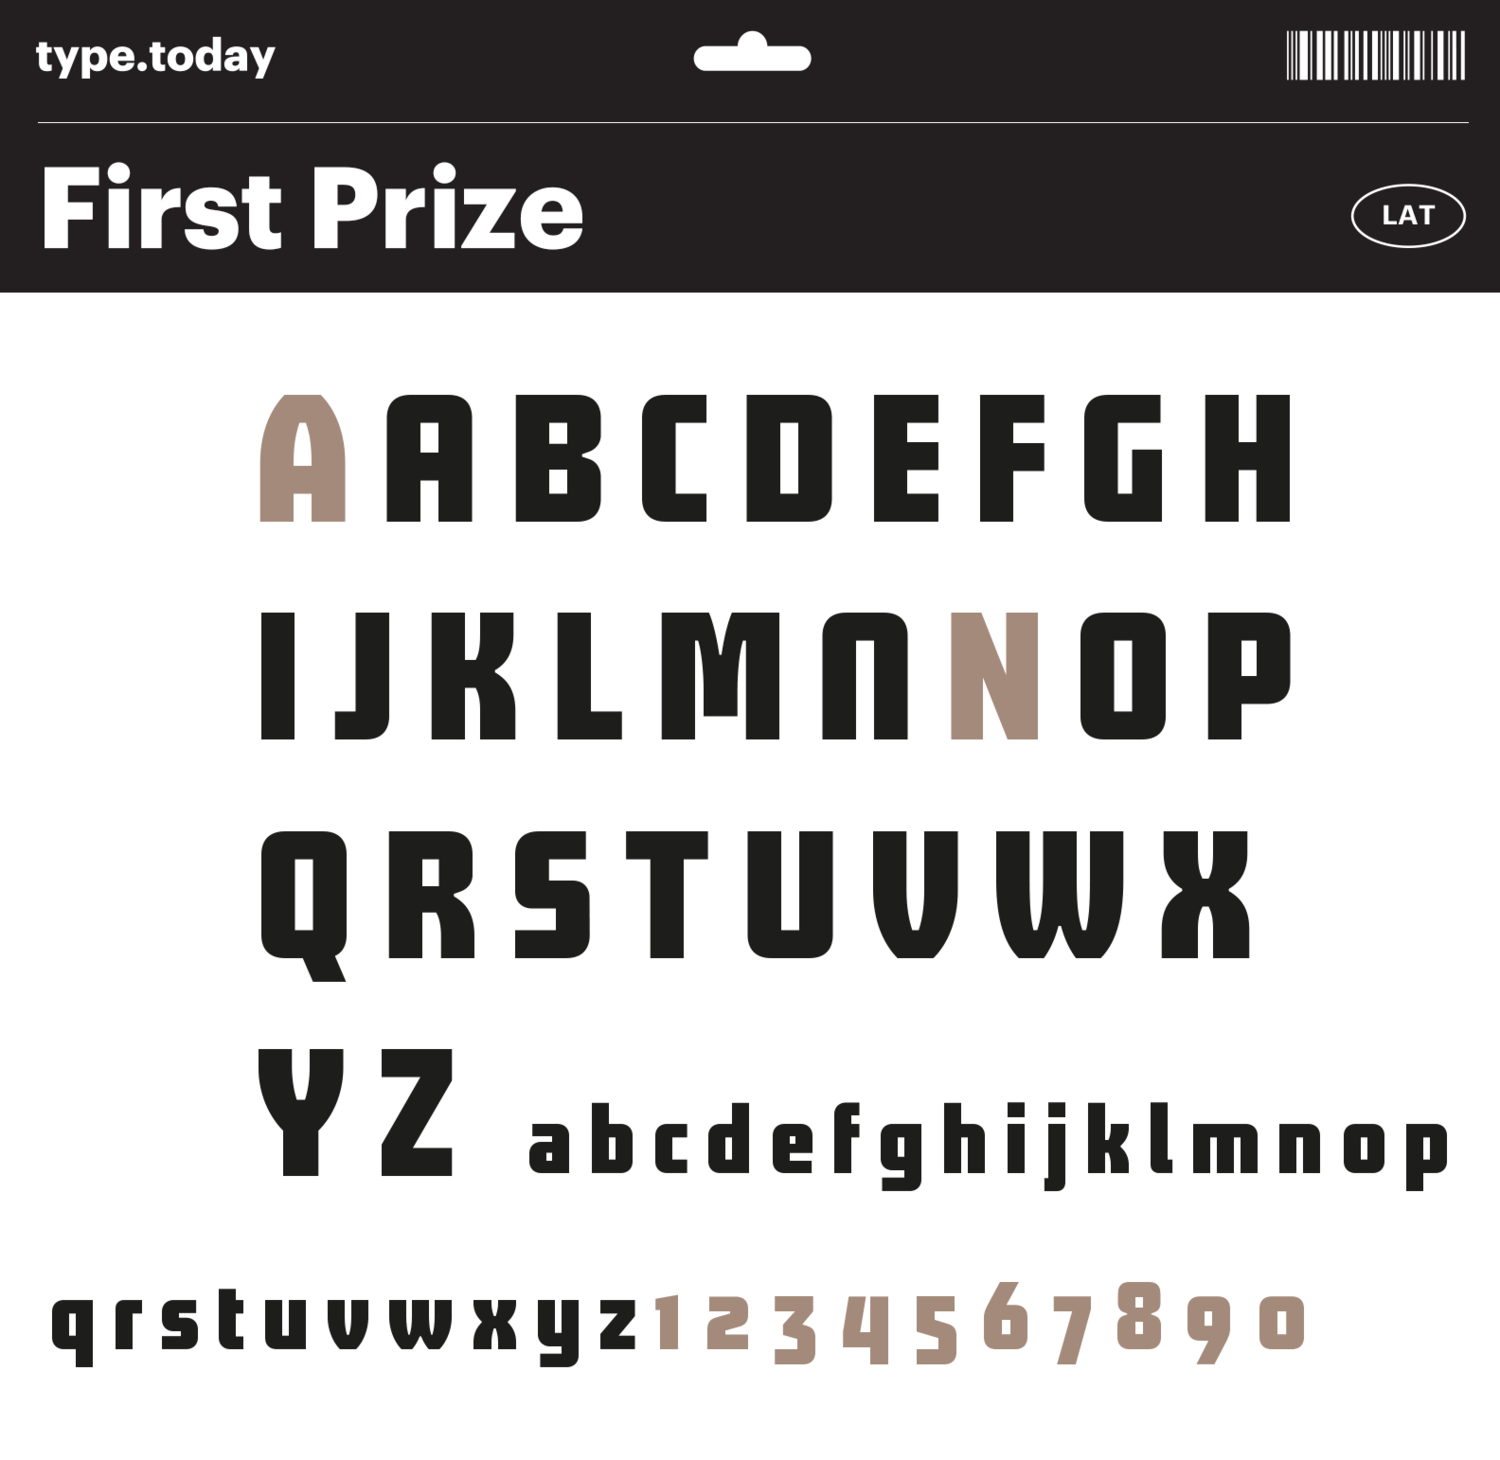 TT_FirstPrize_AlphabetLat